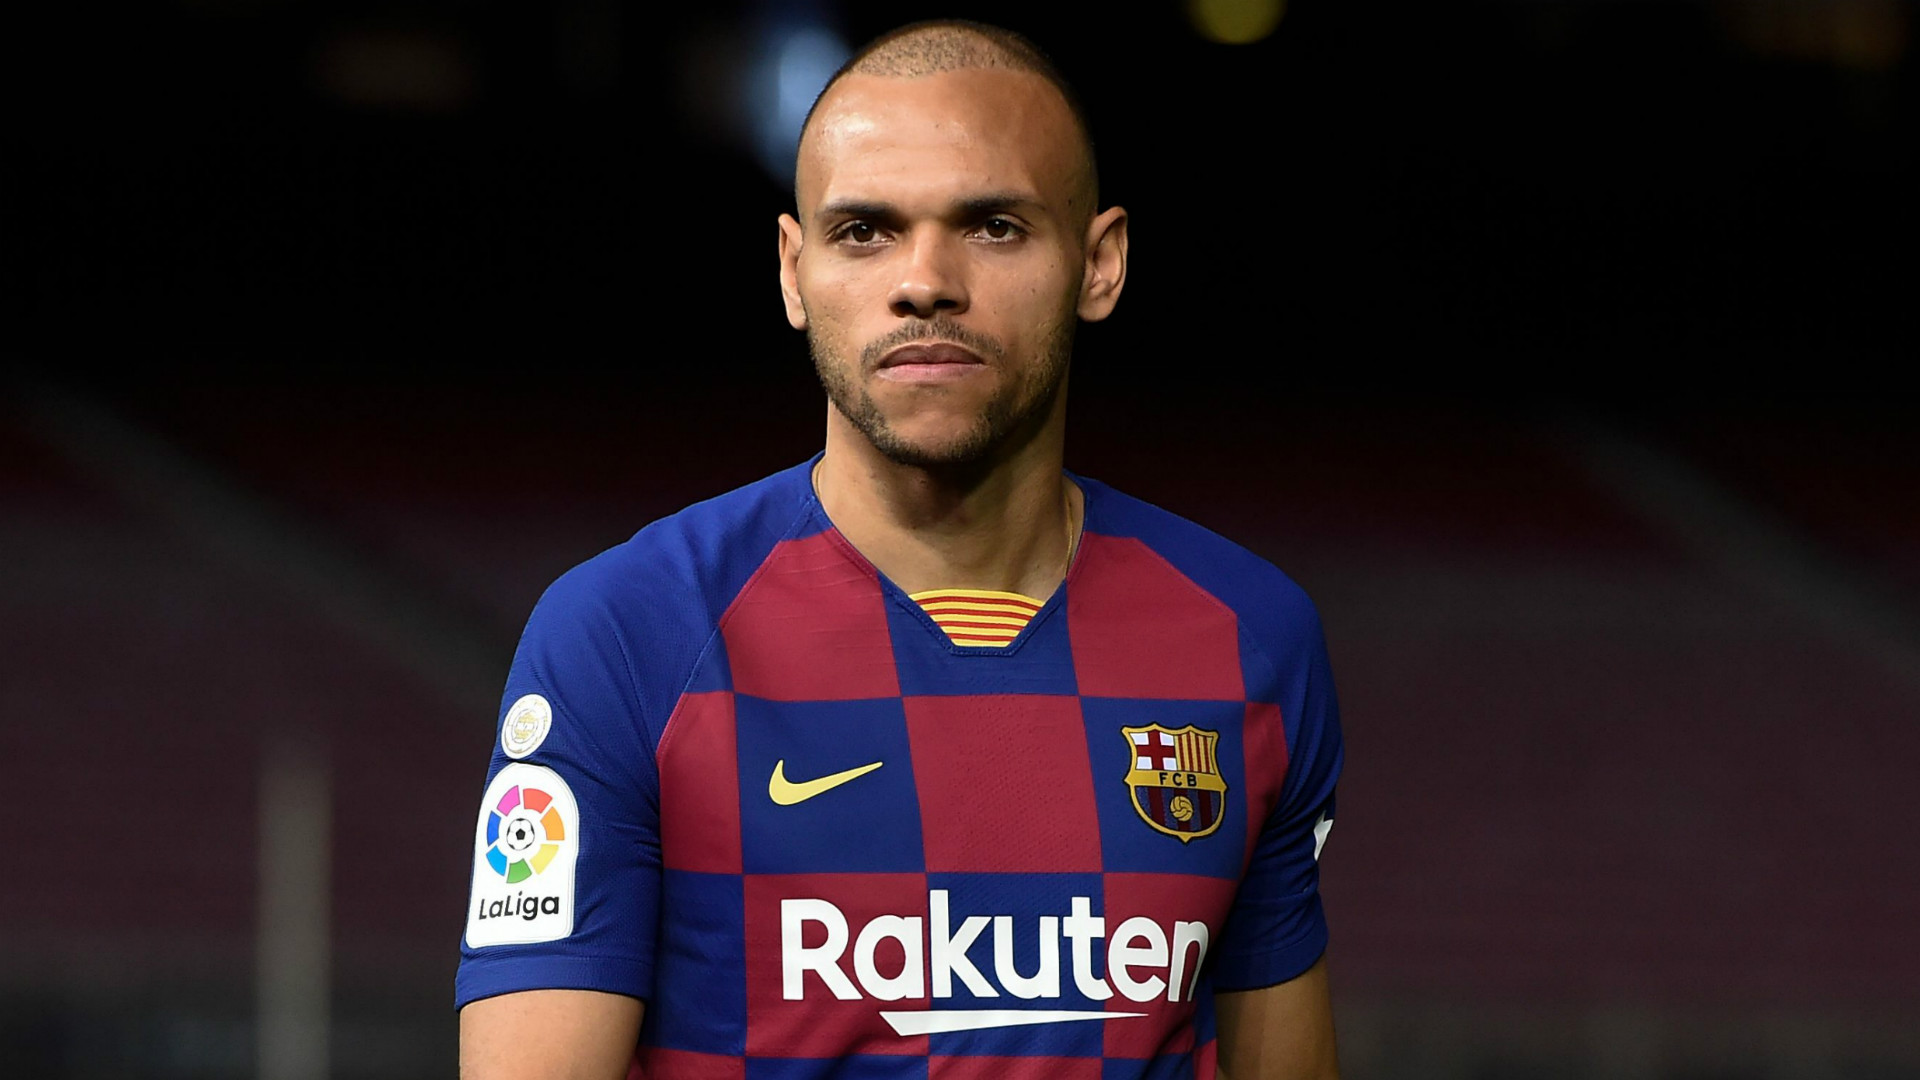 Braithwaite inherits No.9 shirt at Barcelona following Suarez departure